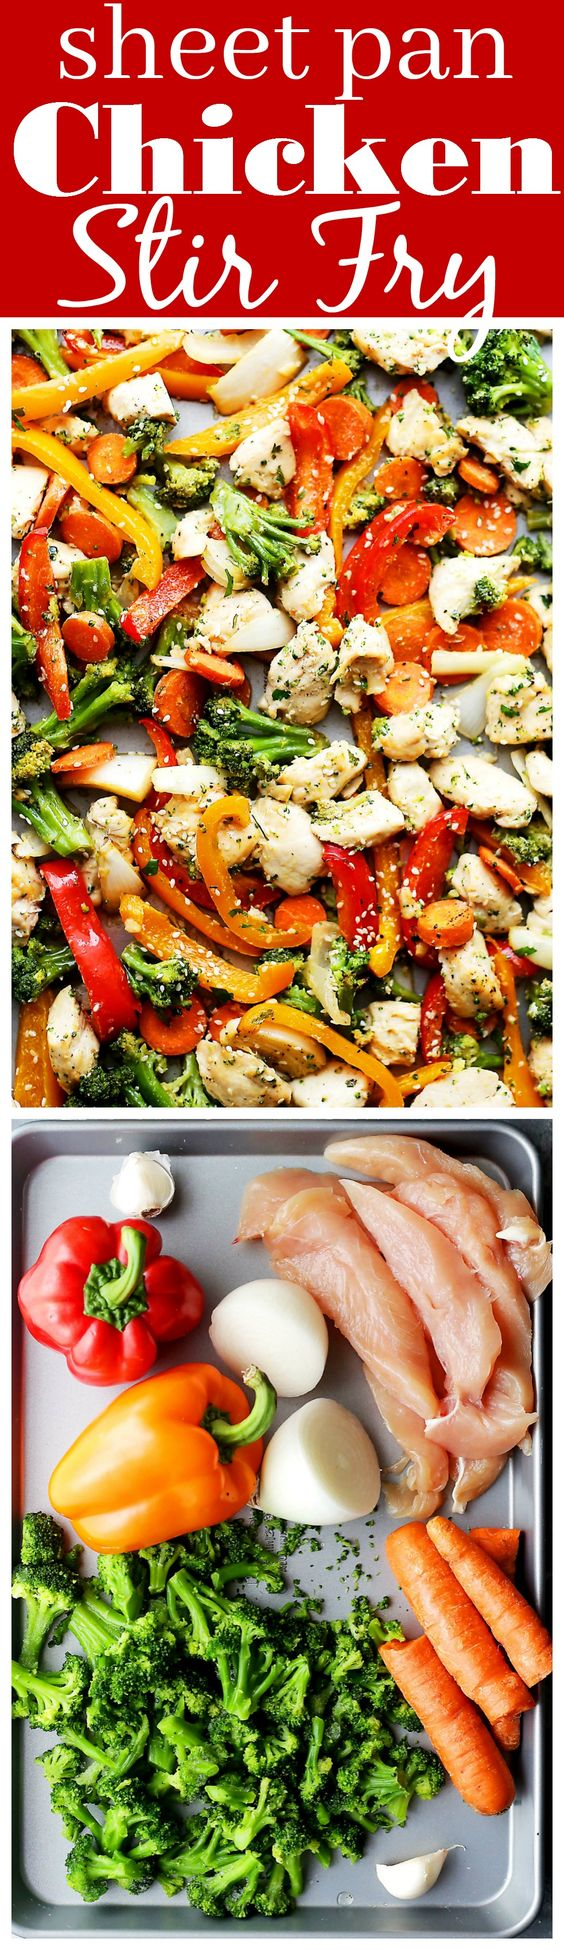 "Sheet Pan Chicken ""Stir Fry"" Recipe via Diethood - Just one pan and 30 minutes is all you will need to make this amazing meal! Skip the wok and make this quick and healthy chicken stir fry dinner in the oven! #sheetpansuppers #sheetpanrecipes #sheetpandinners #onepanmeals #healthyrecipes #mealprep #easyrecipes #healthydinners #healthysuppers #healthylunches #simplefamilymeals #simplefamilyrecipes #simplerecipes"